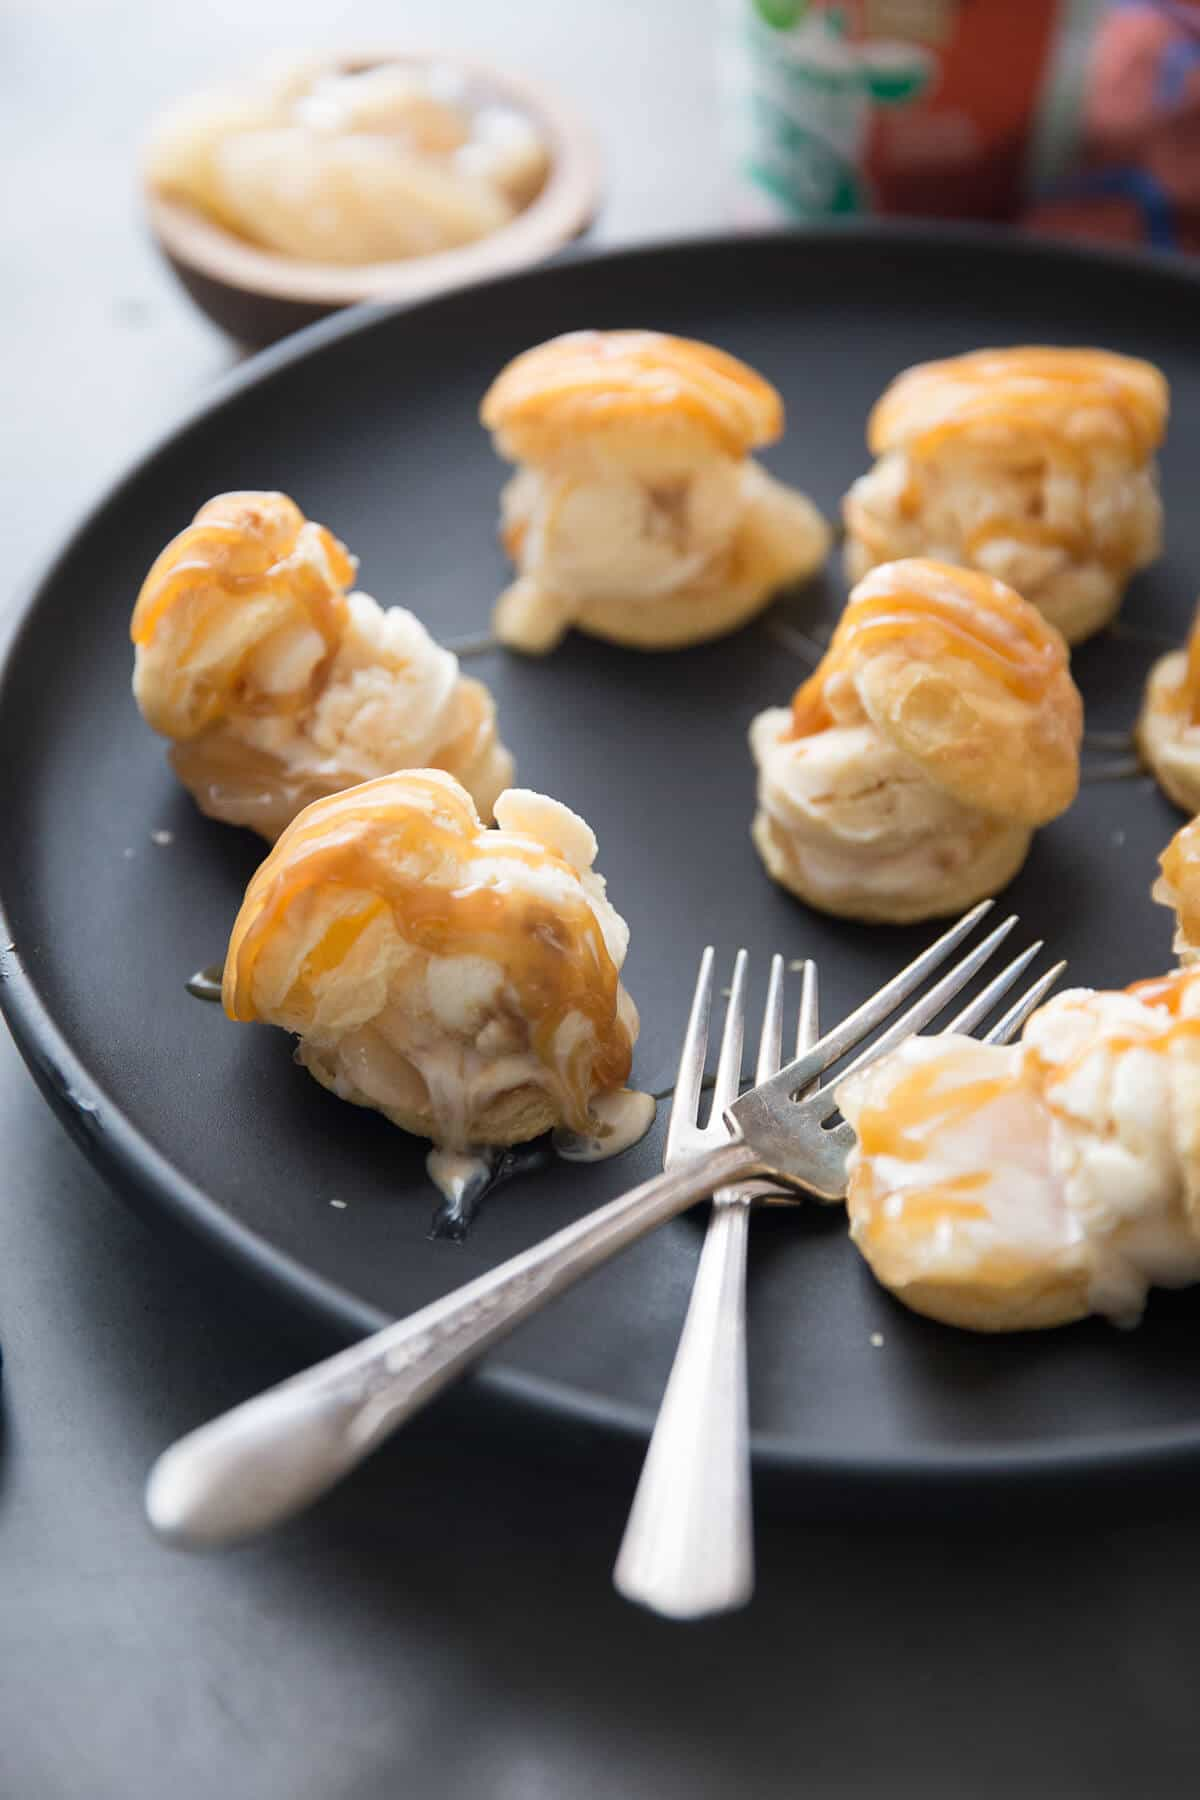 Six delicious profiteroles with vanilla ice cream and drizzled with yummy caramel on a black plate with two silver forks.